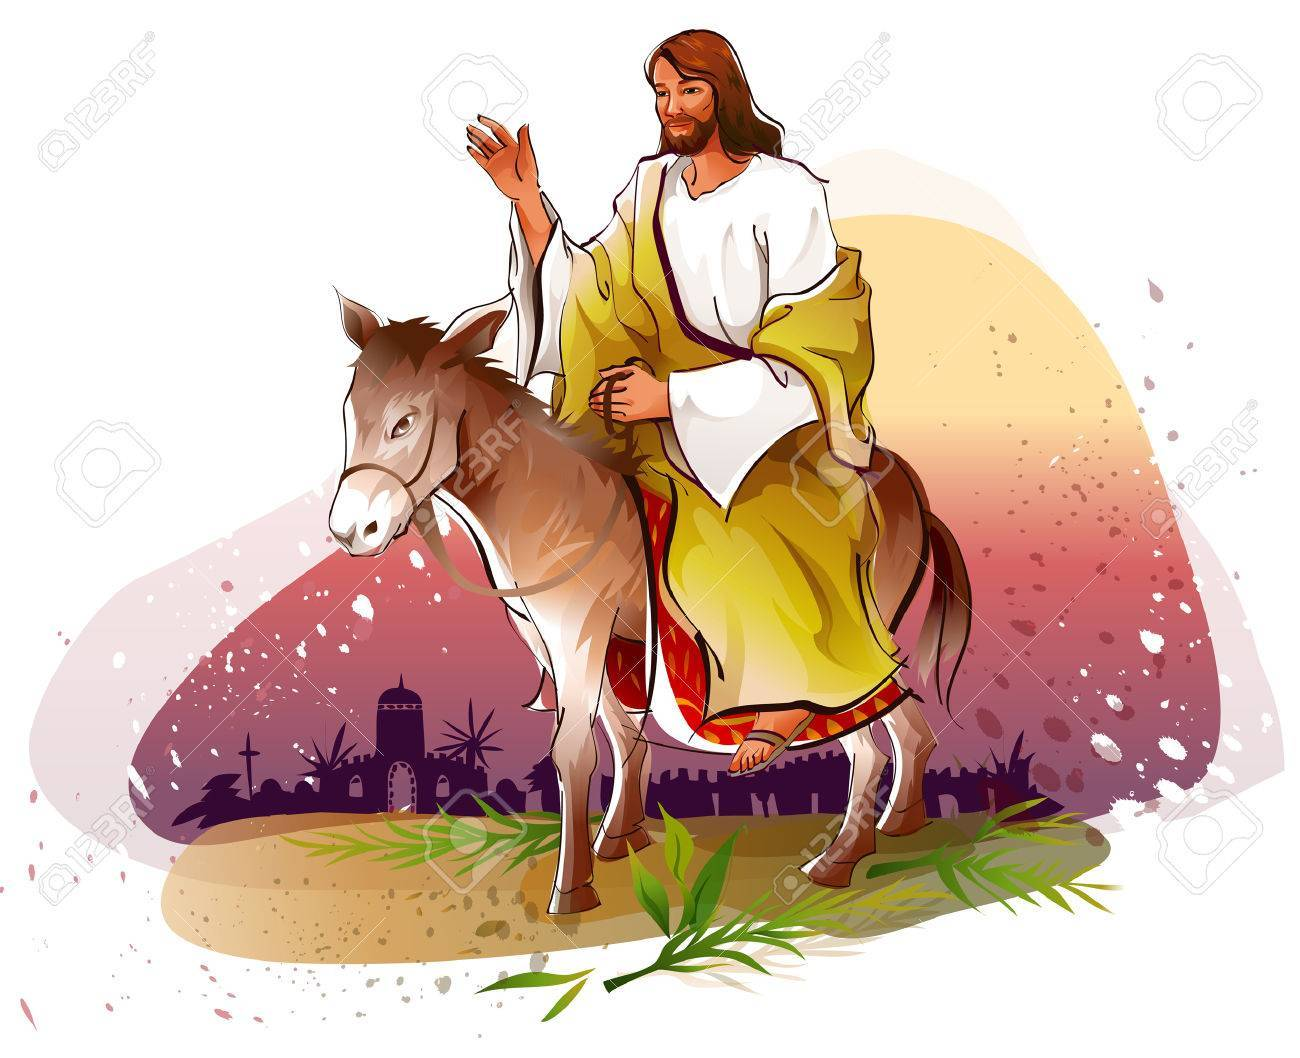 Jesus on donkey clipart clipart royalty free library Jesus donkey clipart 3 » Clipart Portal clipart royalty free library